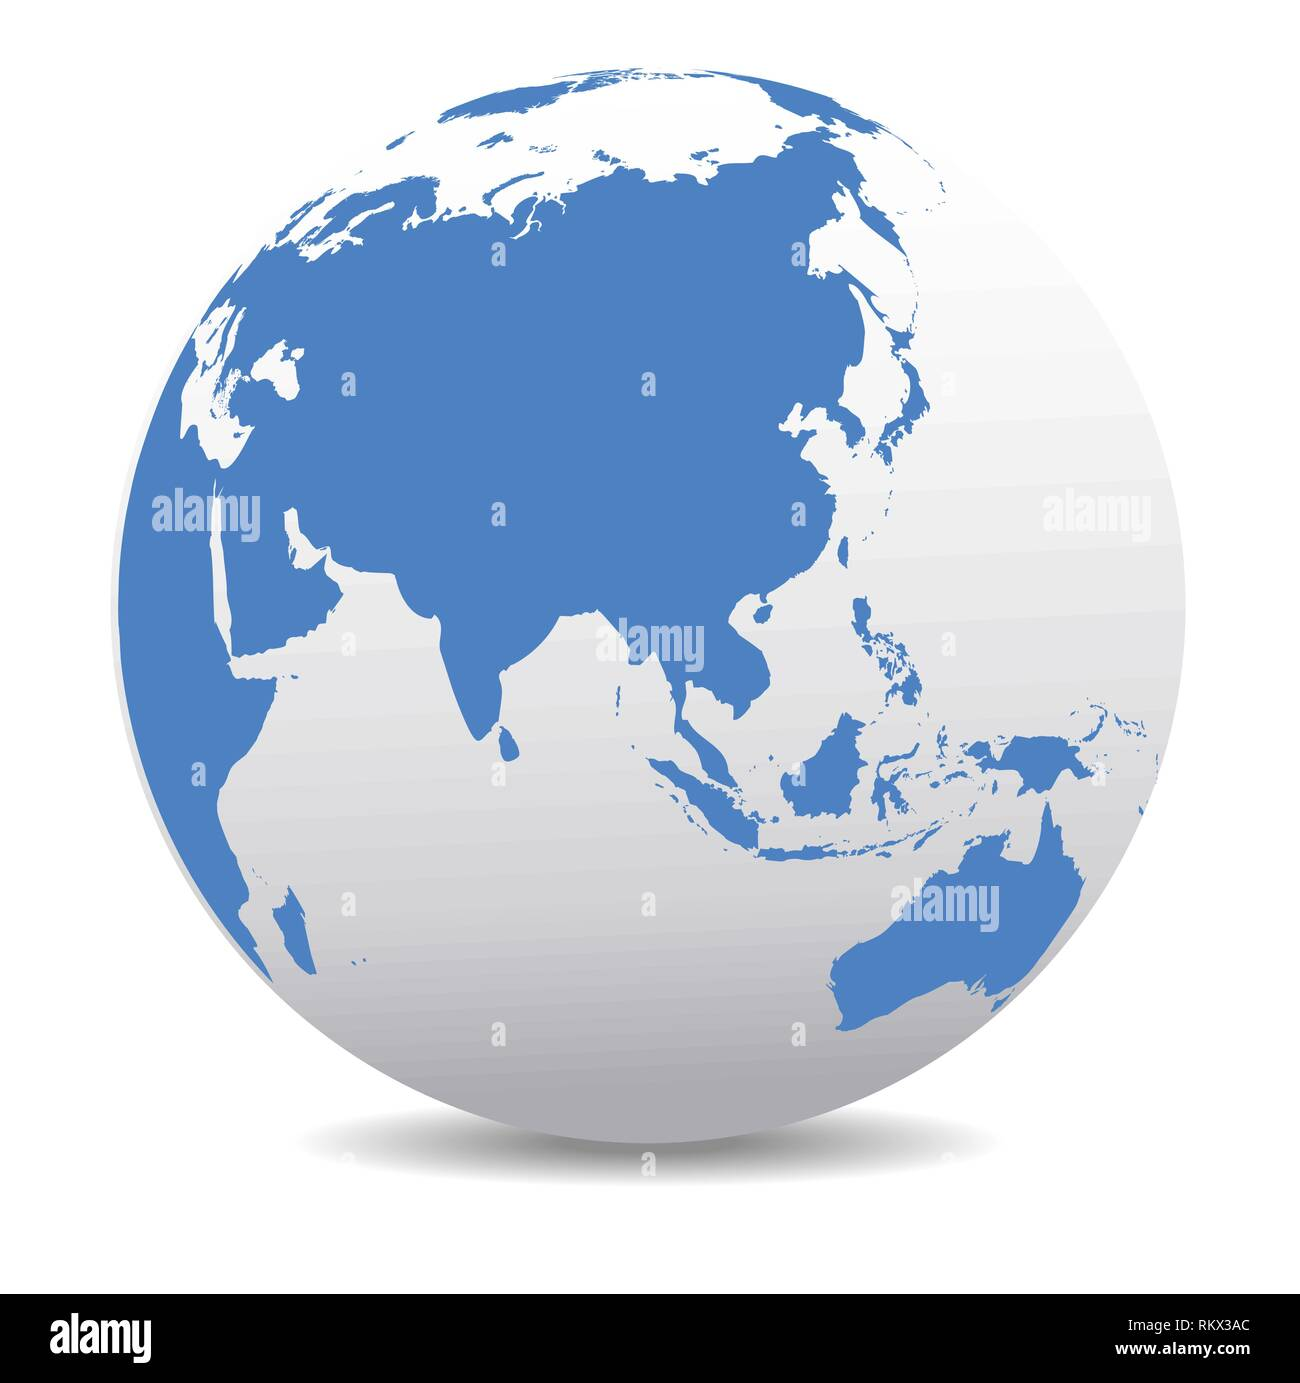 China and Asia, Global World, Vector Map Icon of the World Globe - Stock Vector